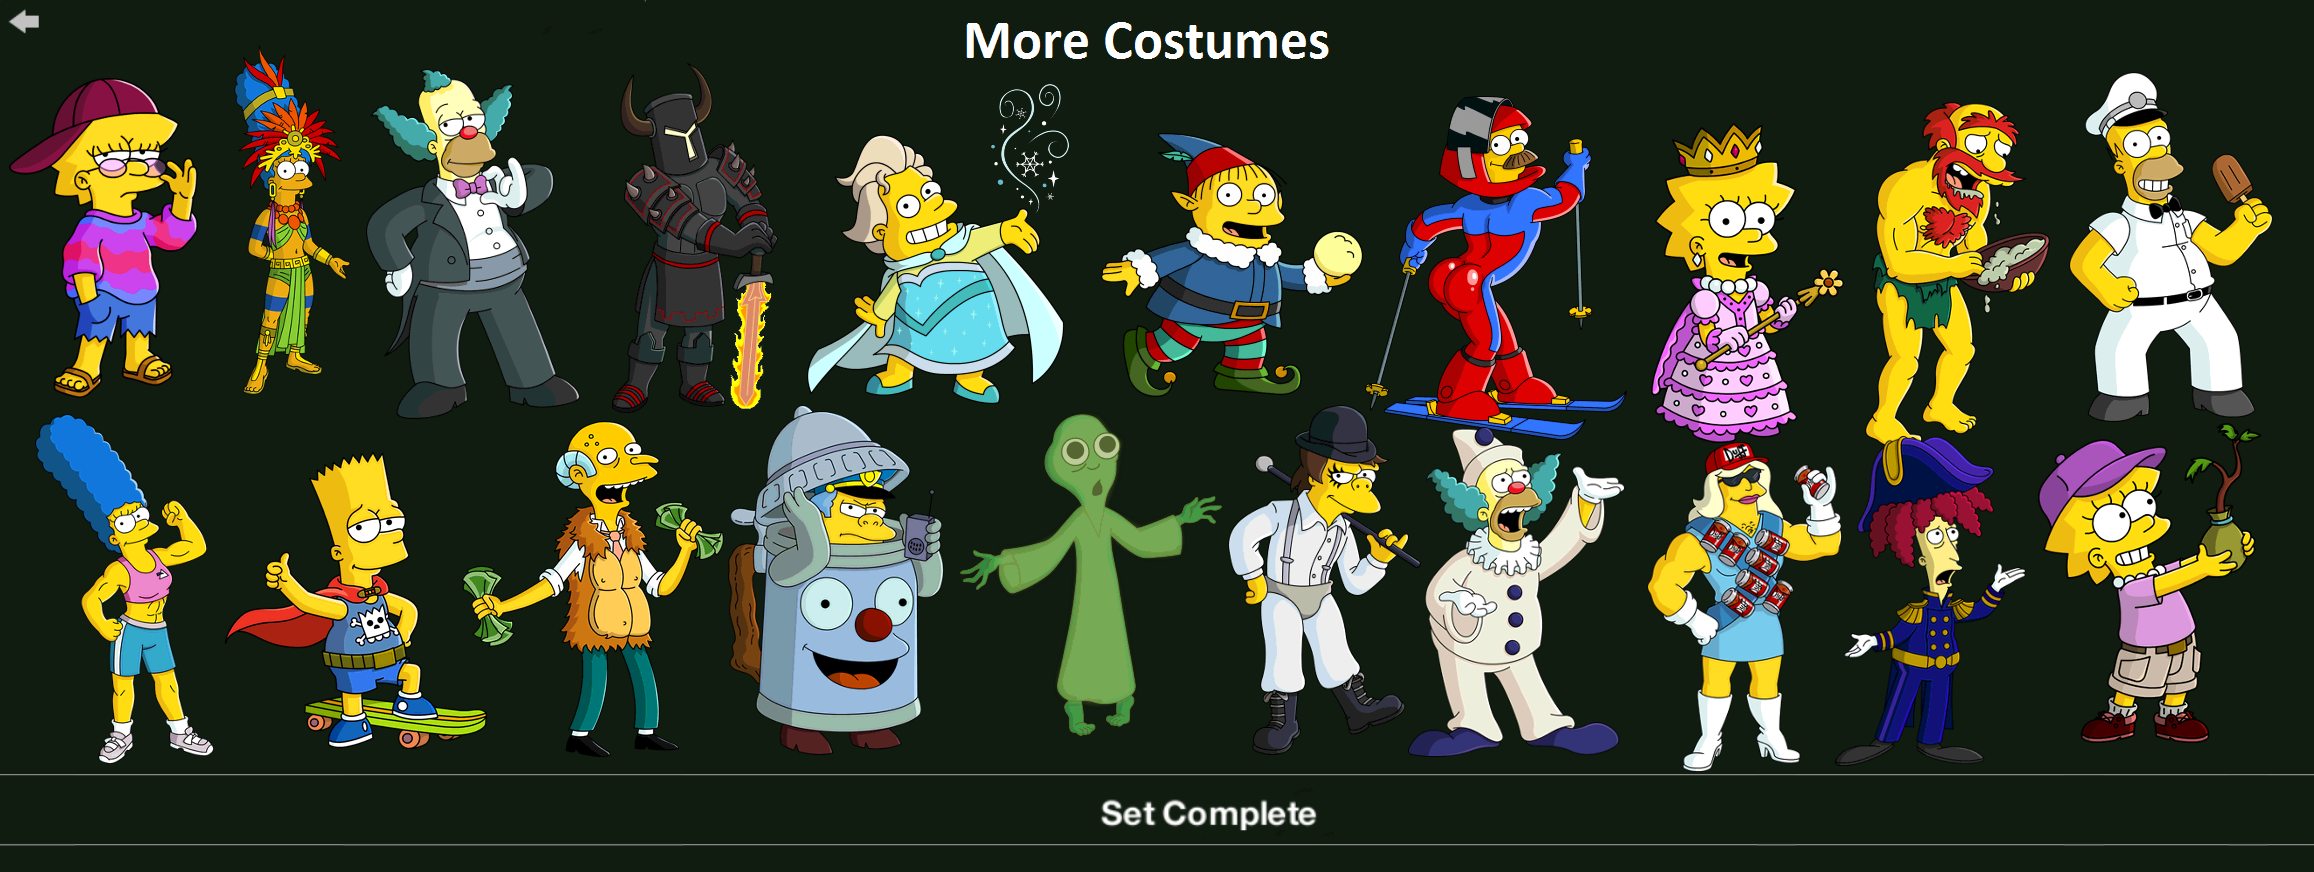 TSTO More Costumes.png